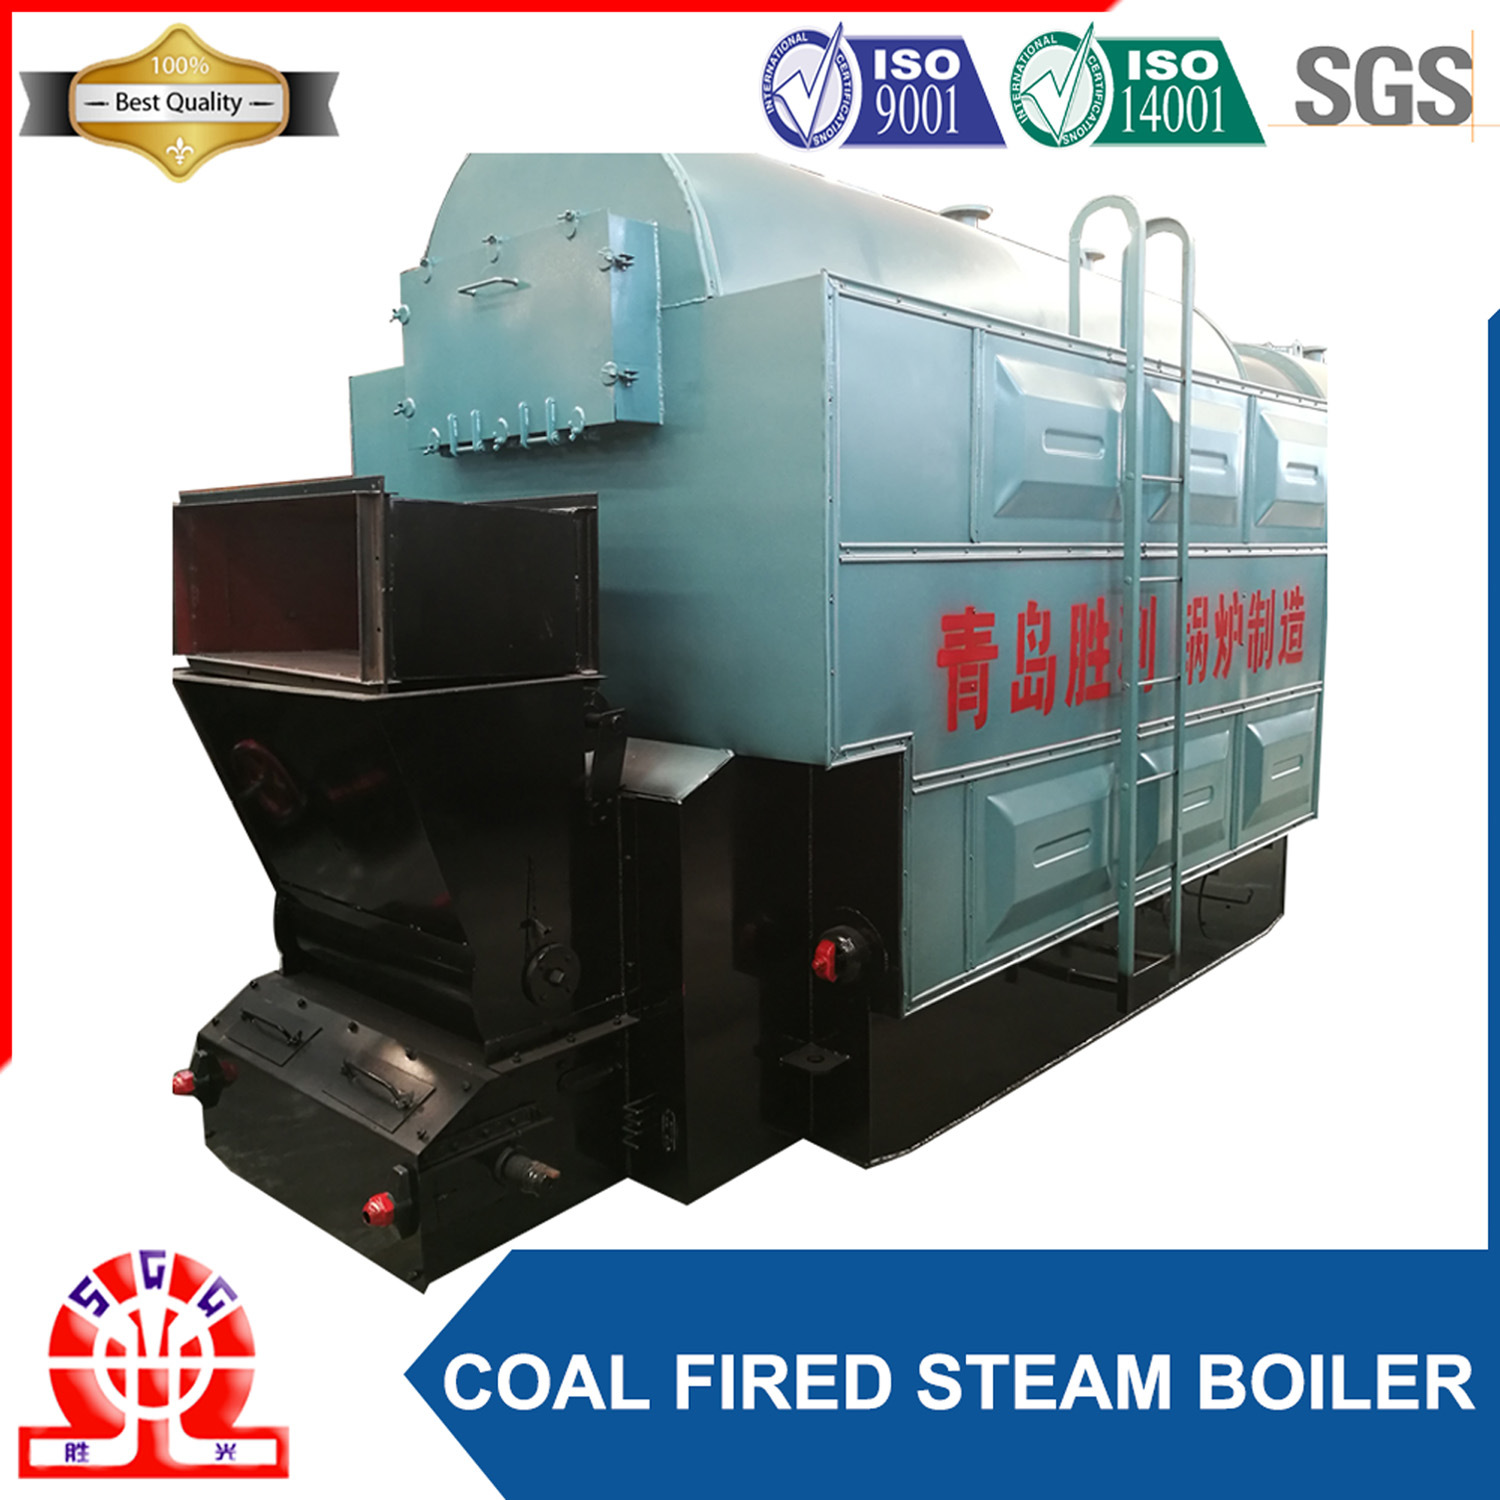 The best solid fuel boiler made in Russia 28